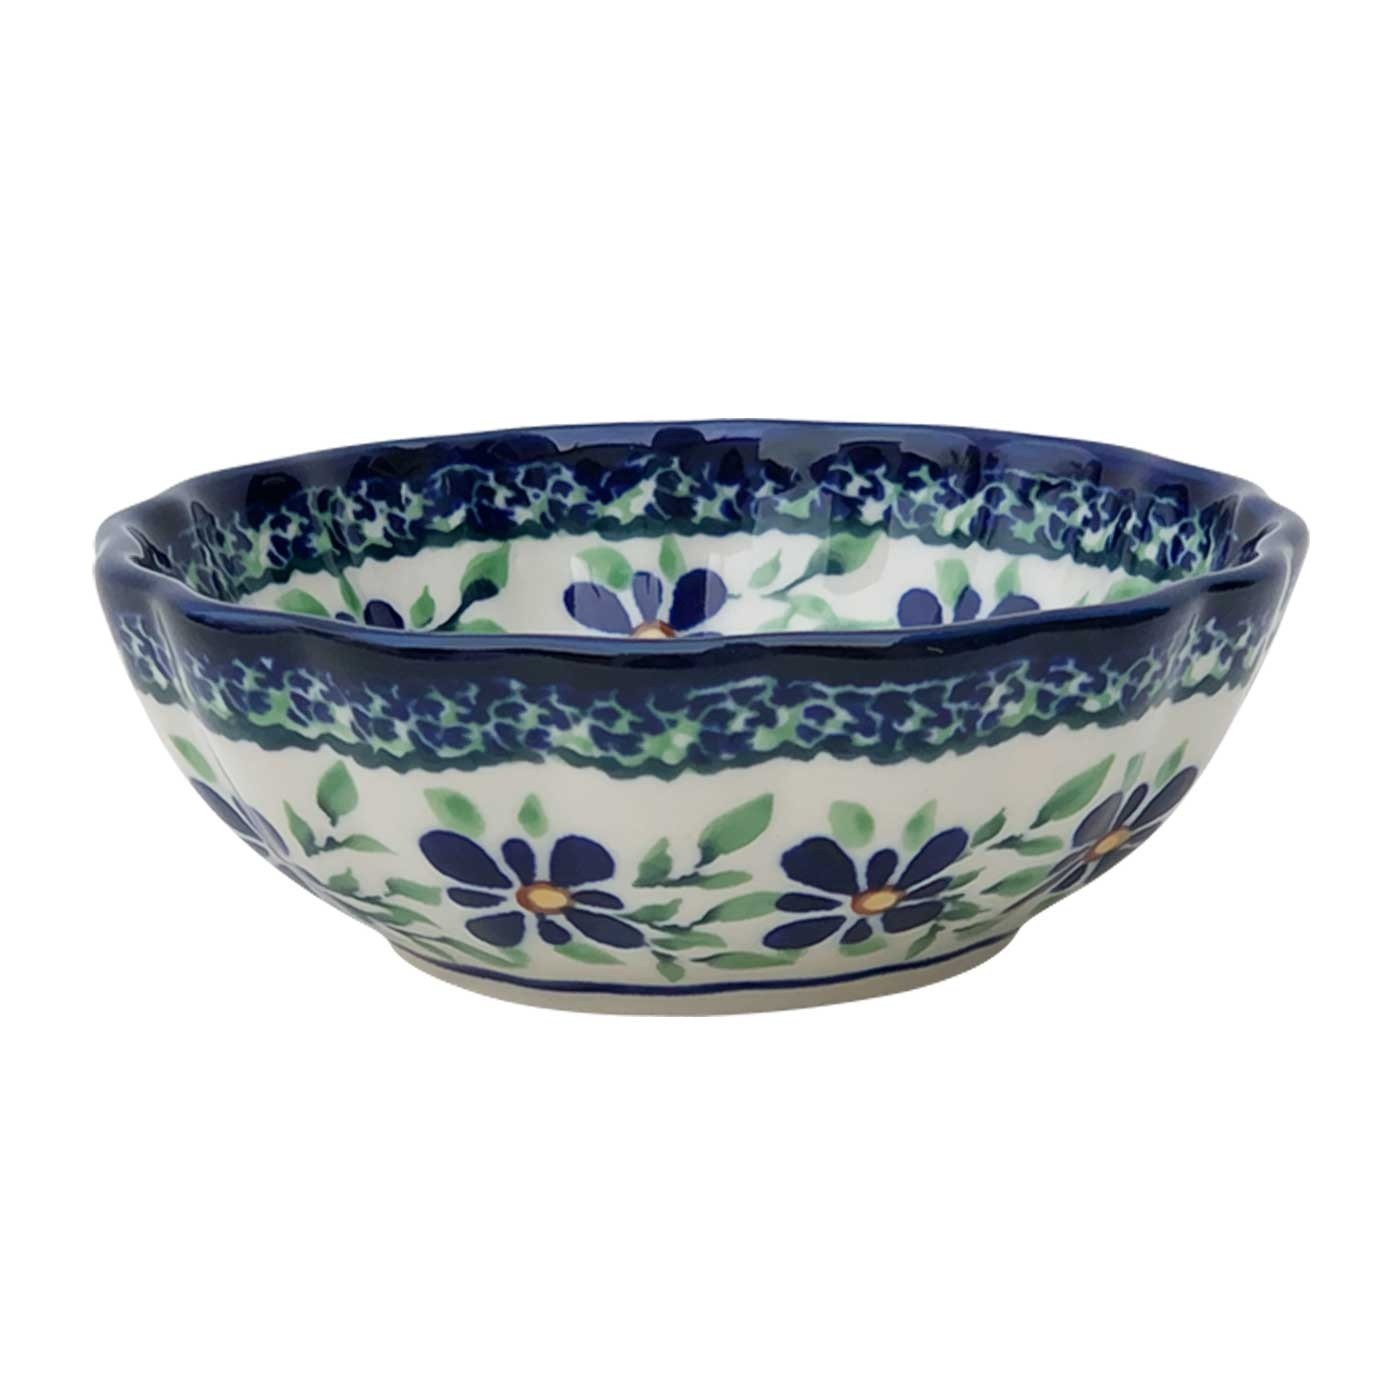 Pottery Avenue Small Scalloped Bowl - 1518-DU121 Dearest Friend